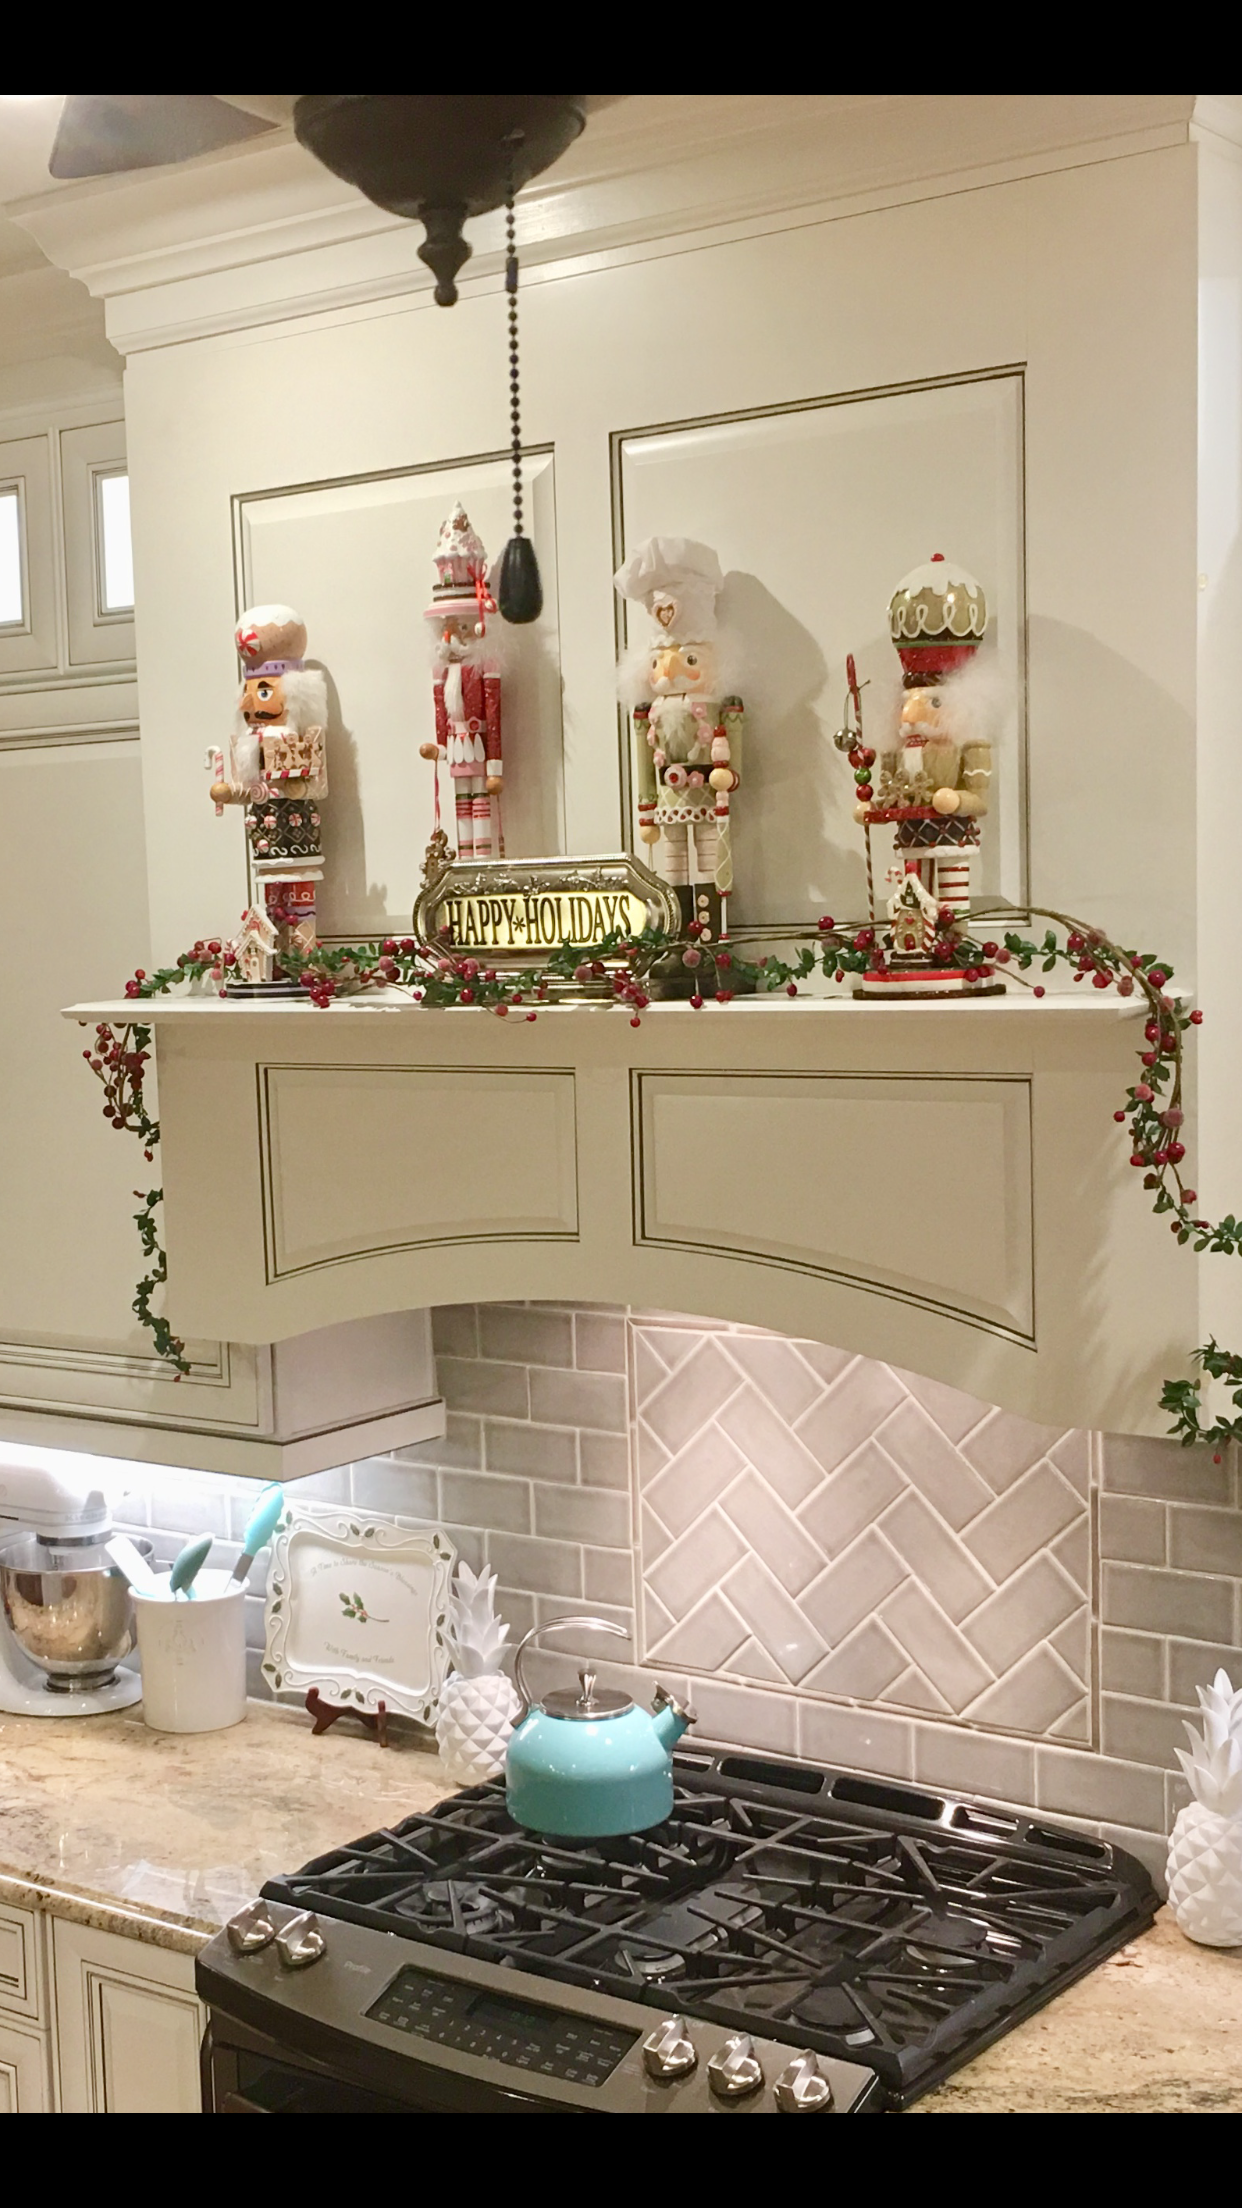 christmas kitchen cabinet decor over oven nutcracker kitchen cabinets decor christmas kitchen on kitchen xmas decor id=81000